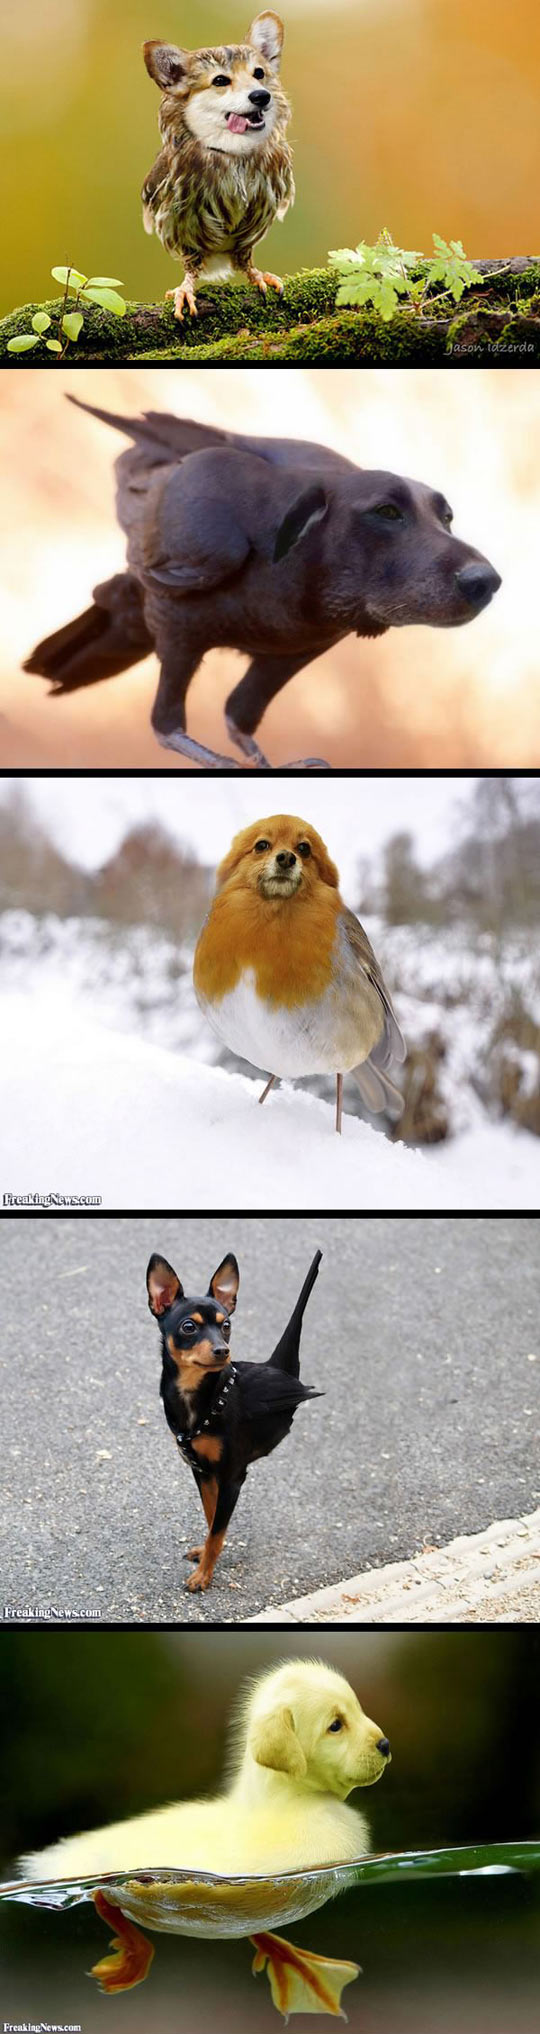 funny-mix-dog-heads-birds-bodies